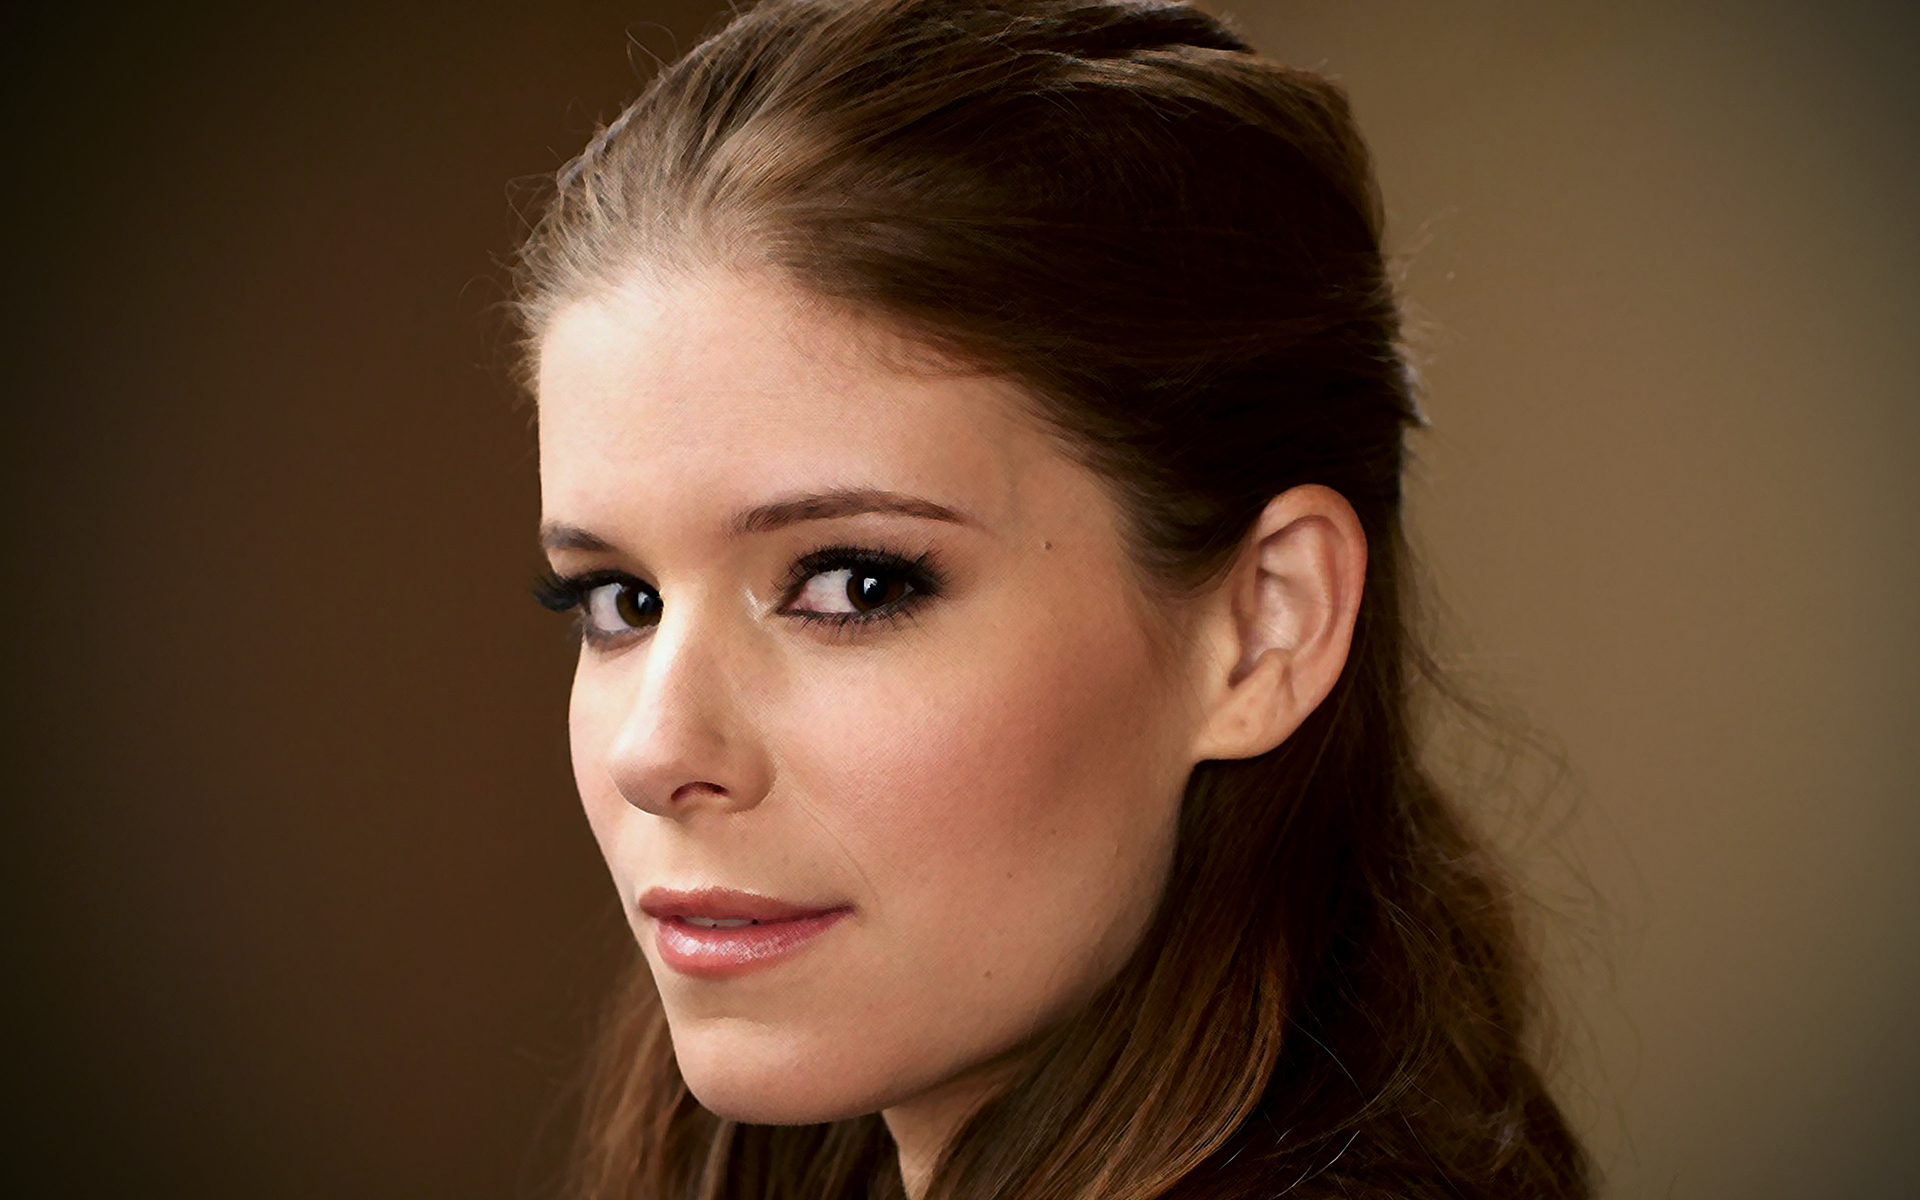 kate mara hd wallpapers for desktop download